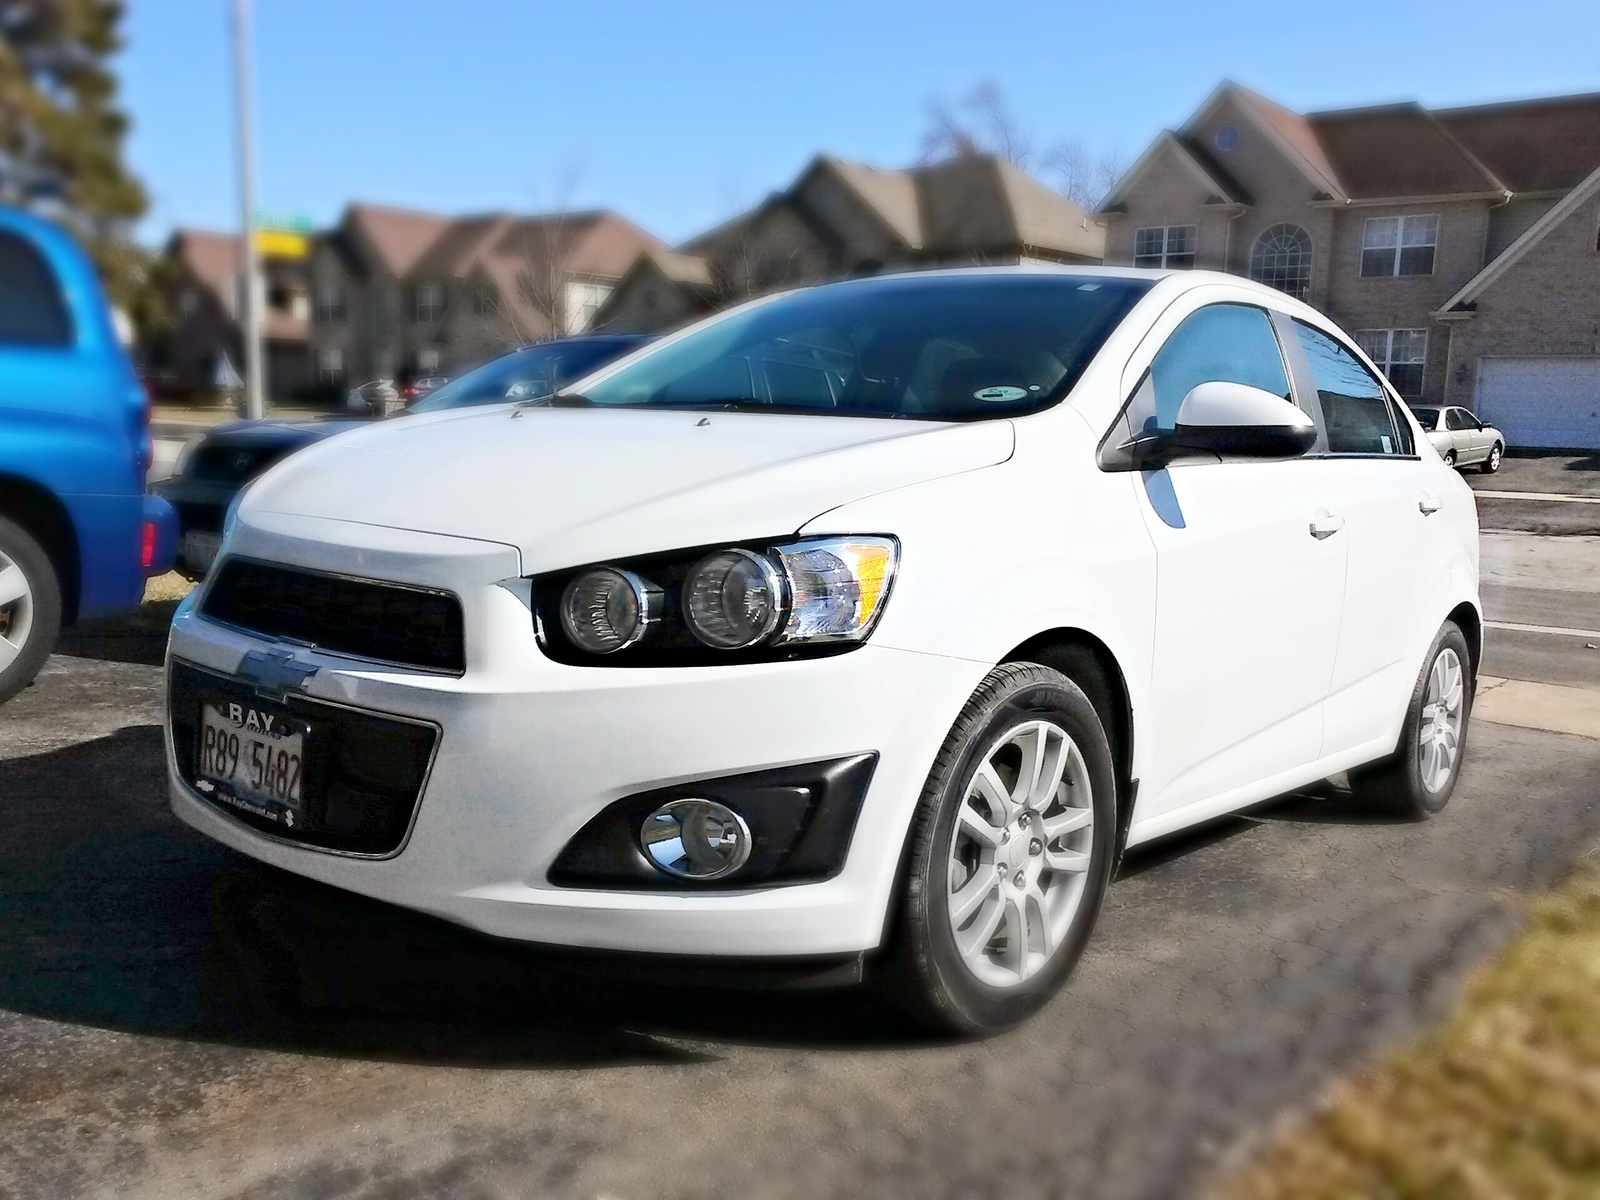 2013 chevrolet sonic pictures cargurus. Black Bedroom Furniture Sets. Home Design Ideas